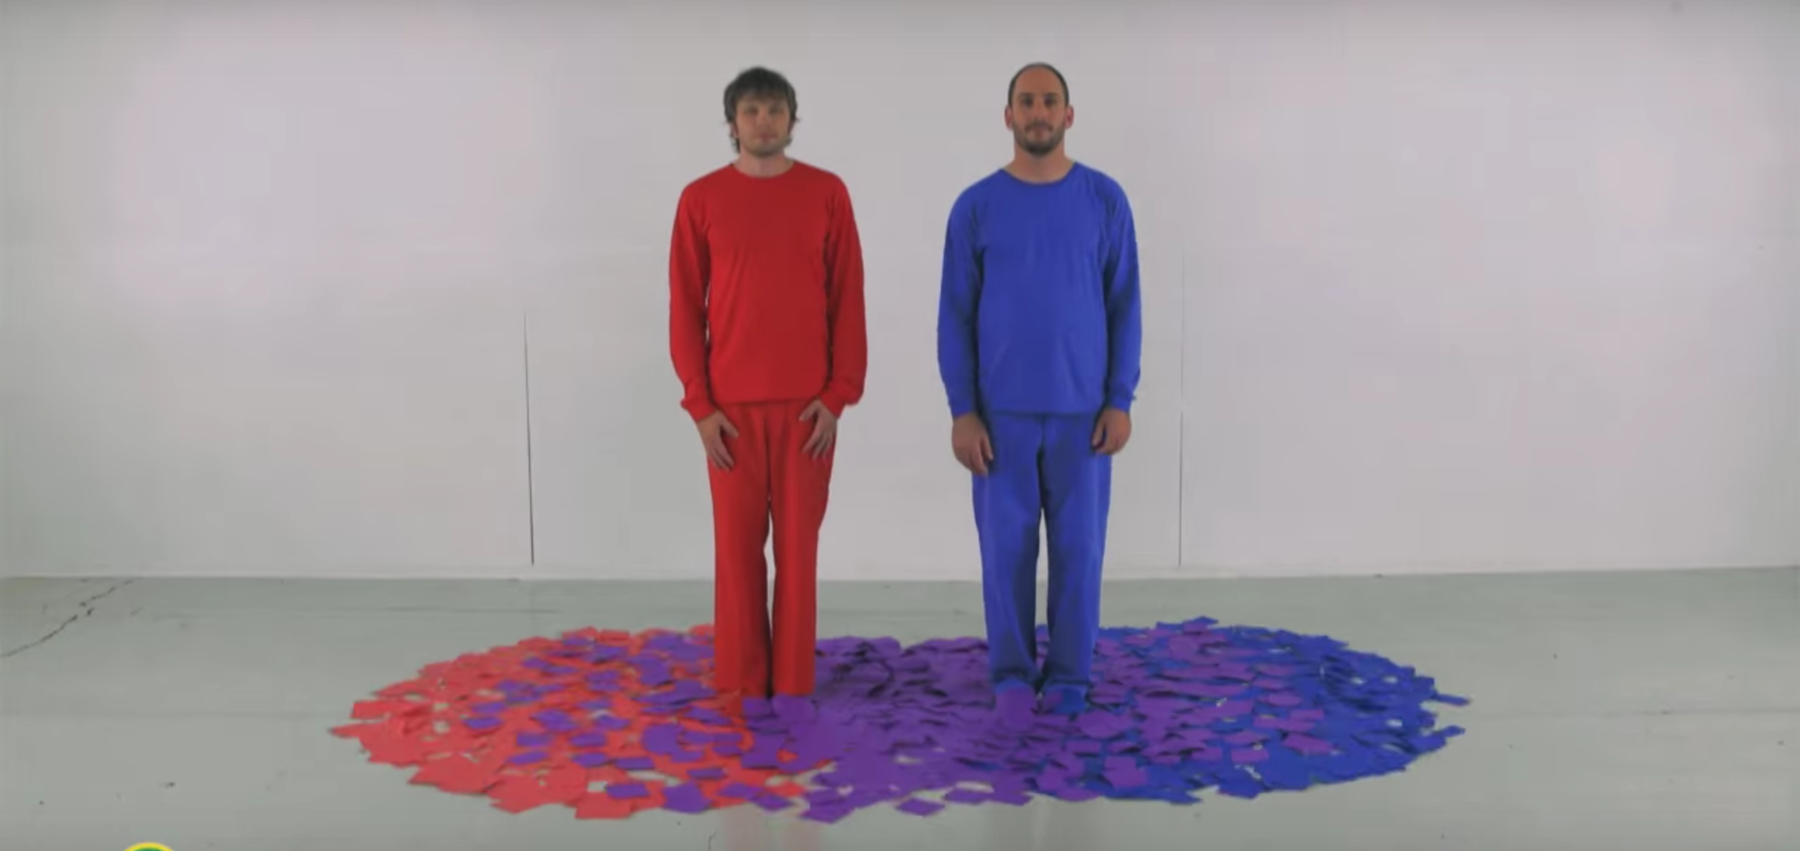 Ok After All That Work Lets Watch A Sesame Street Video By The Fabulous OK GO Peeps Image